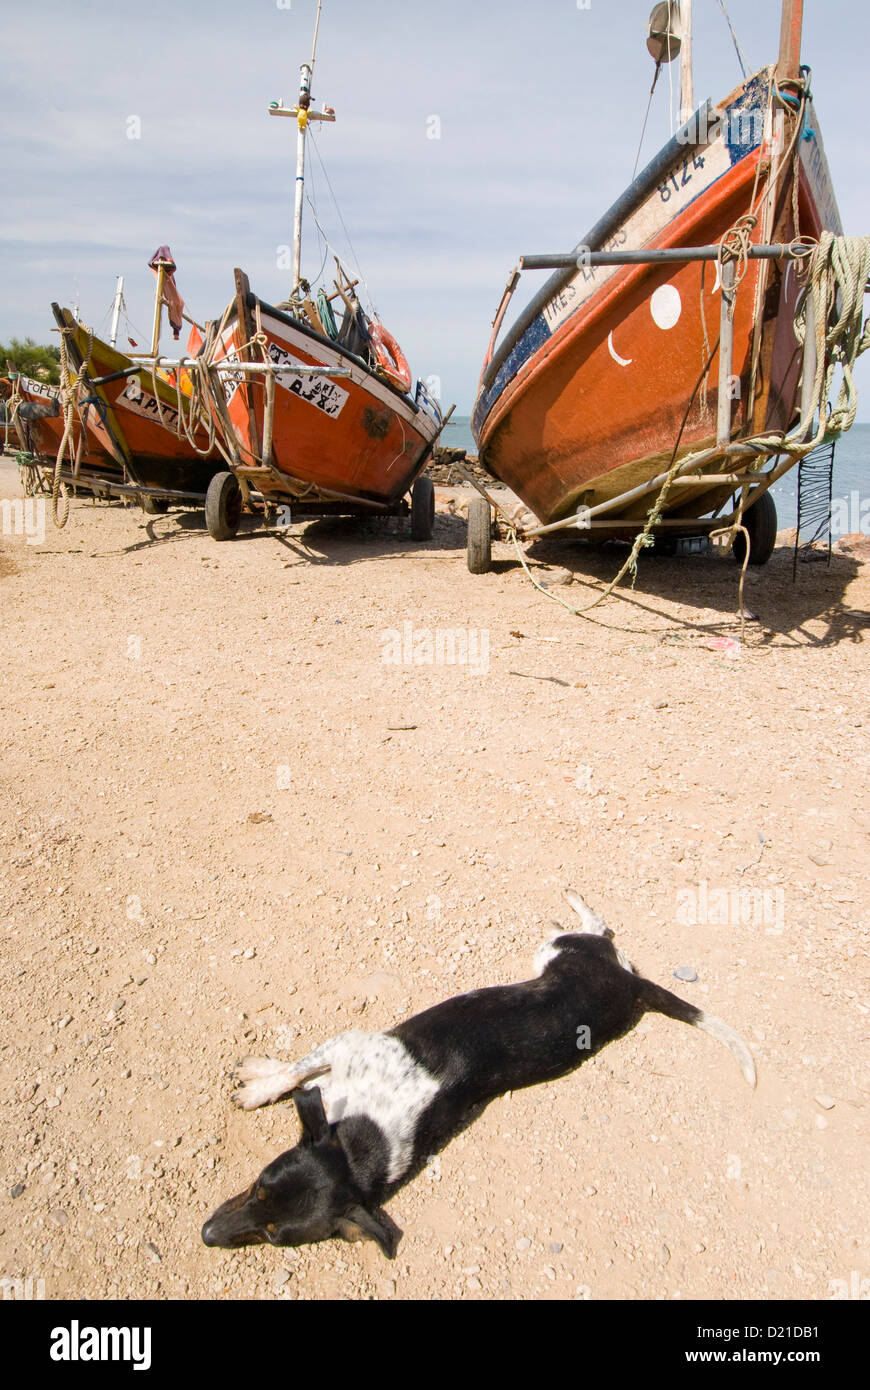 Sleeping dog and fishing boat at fish camp in Piriapolis in Maldonado Uruguay - Stock Image